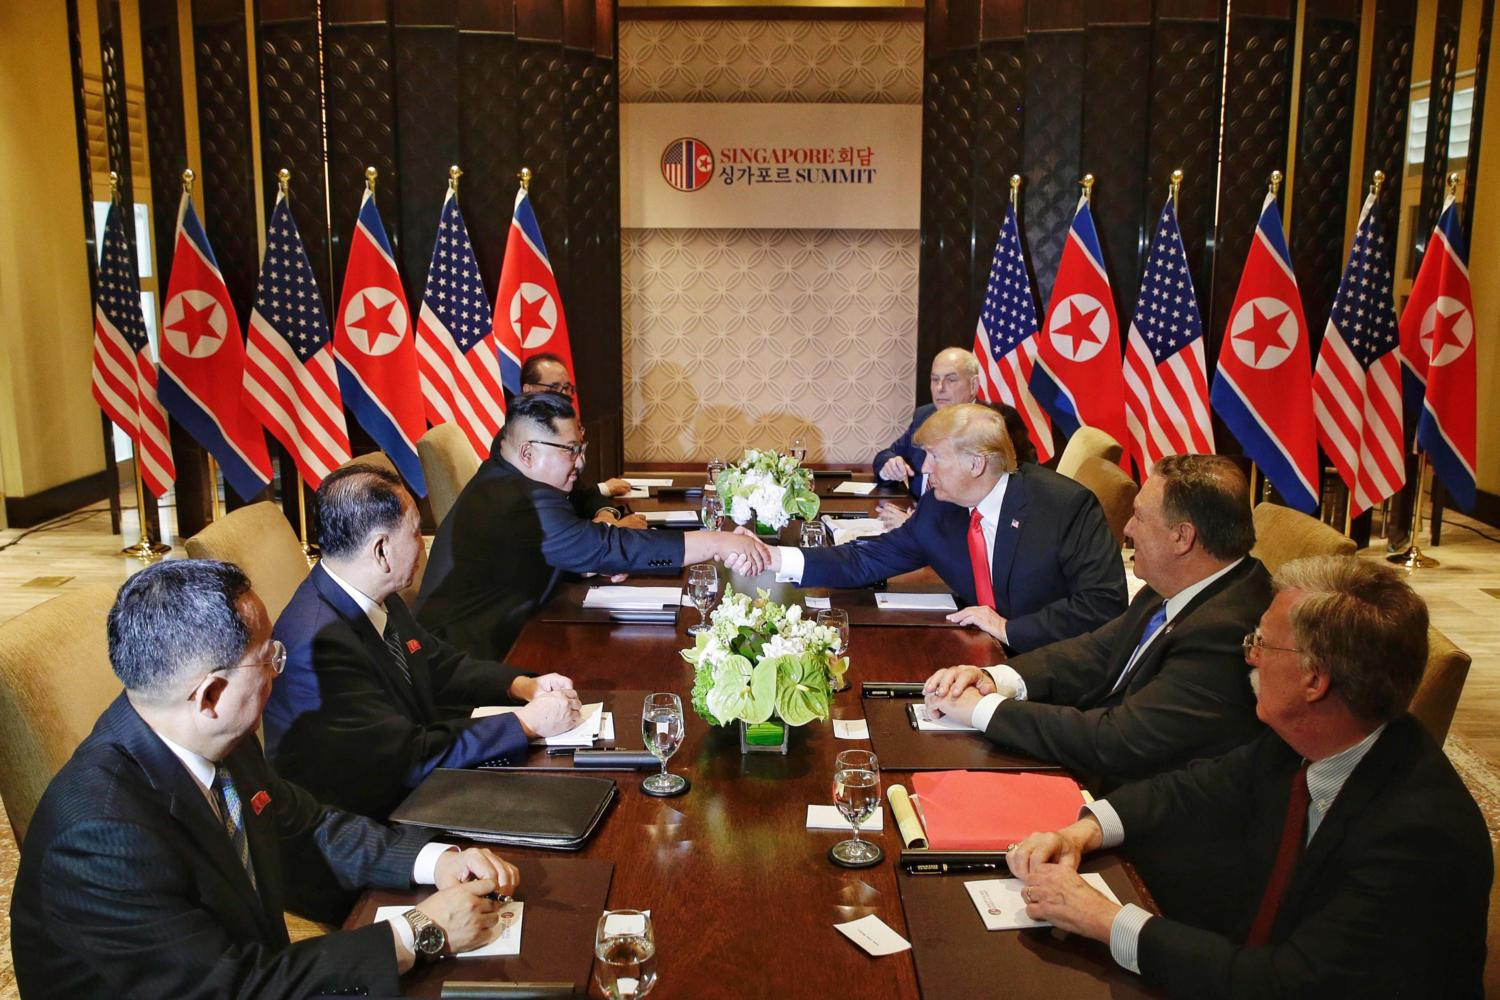 North Korea's Kim Jong Un, third from left, shakes hands with U.S. President Donald Trump, third from right, in Singapore Tuesday, June 12. (Kevin Lim/The Straits Times/Zuma Press/TNS)